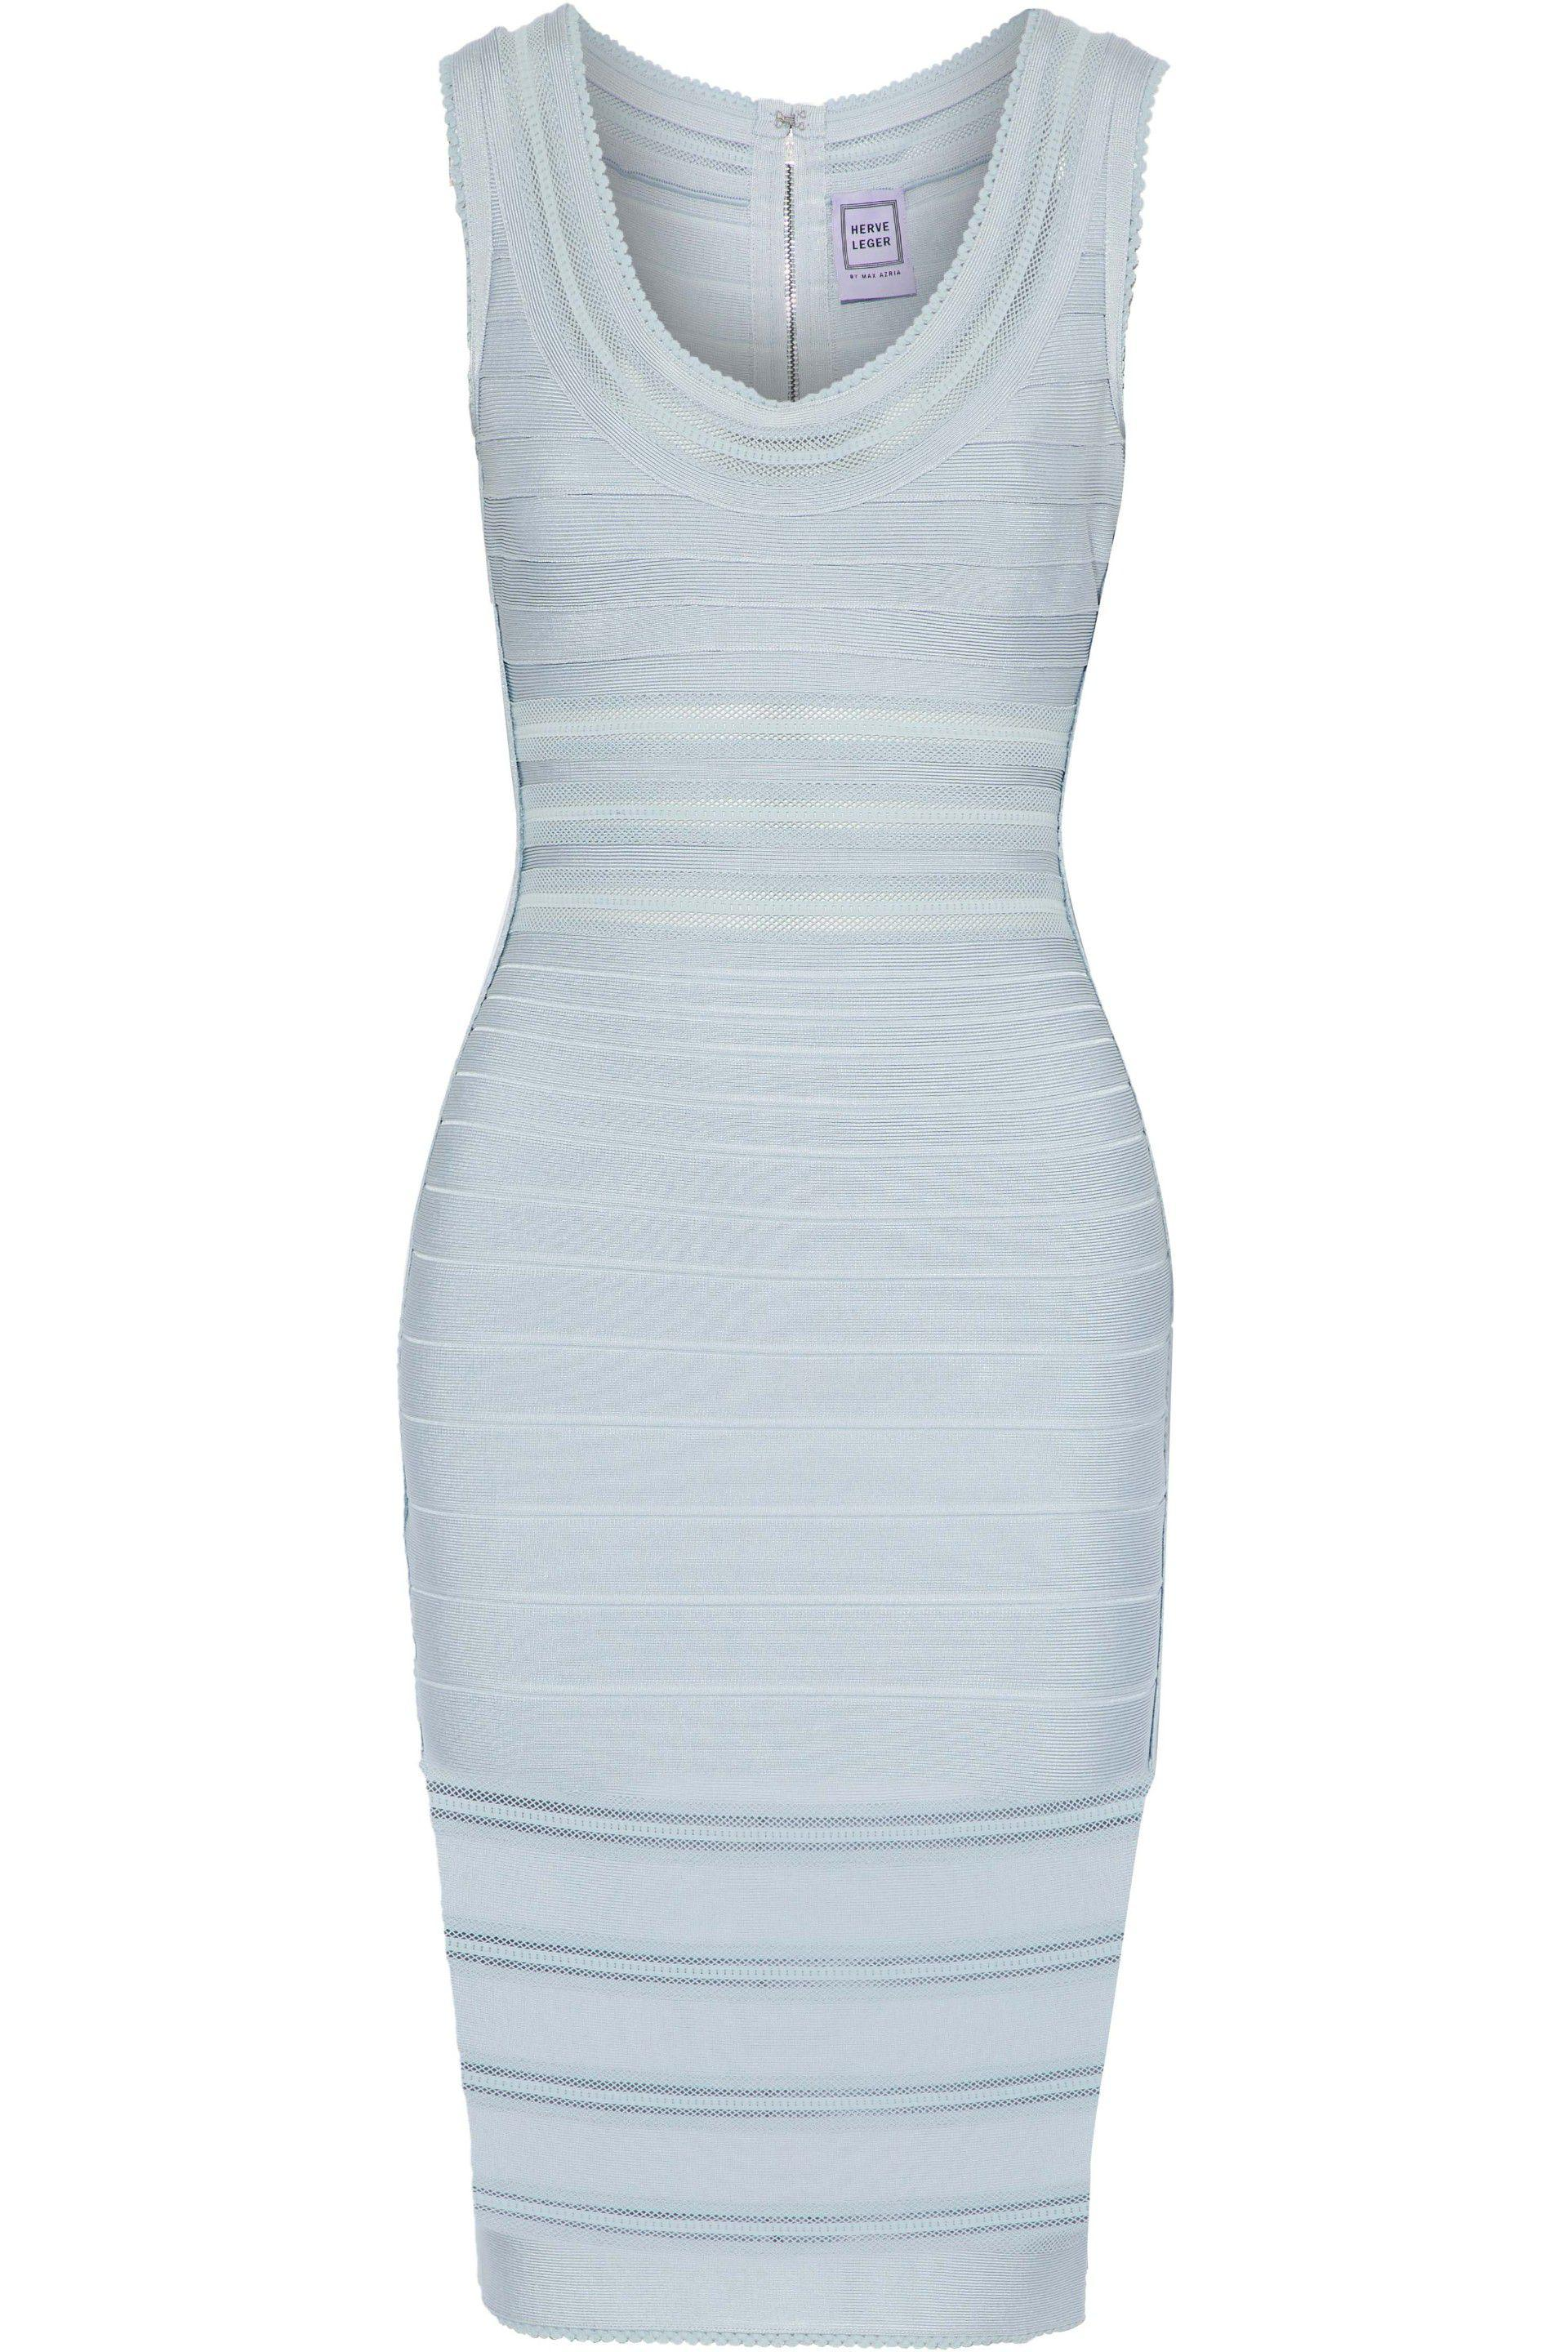 Hervé Léger Woman Off-the-shoulder Pleated Crepe De Chine-paneled Bandage Dress Sky Blue Size M Hérve Léger Sale Countdown Package Buy Cheap Ebay Pay With Paypal For Sale Outlet 2018 New 9U5HY7